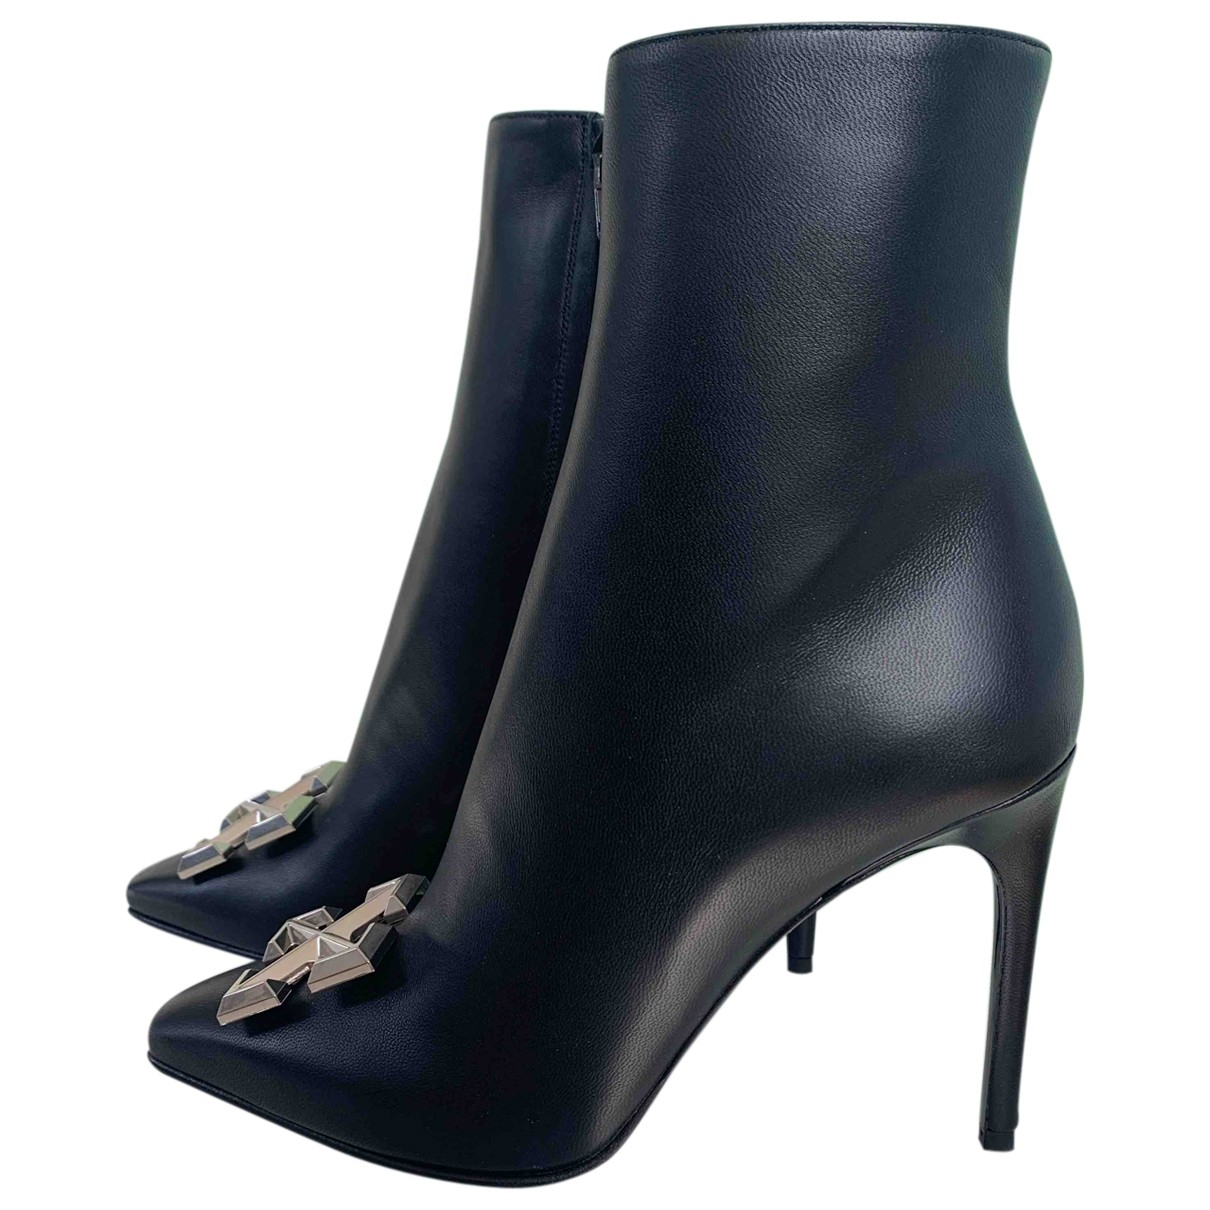 Off-white \N Black Leather Ankle boots for Women 39 EU